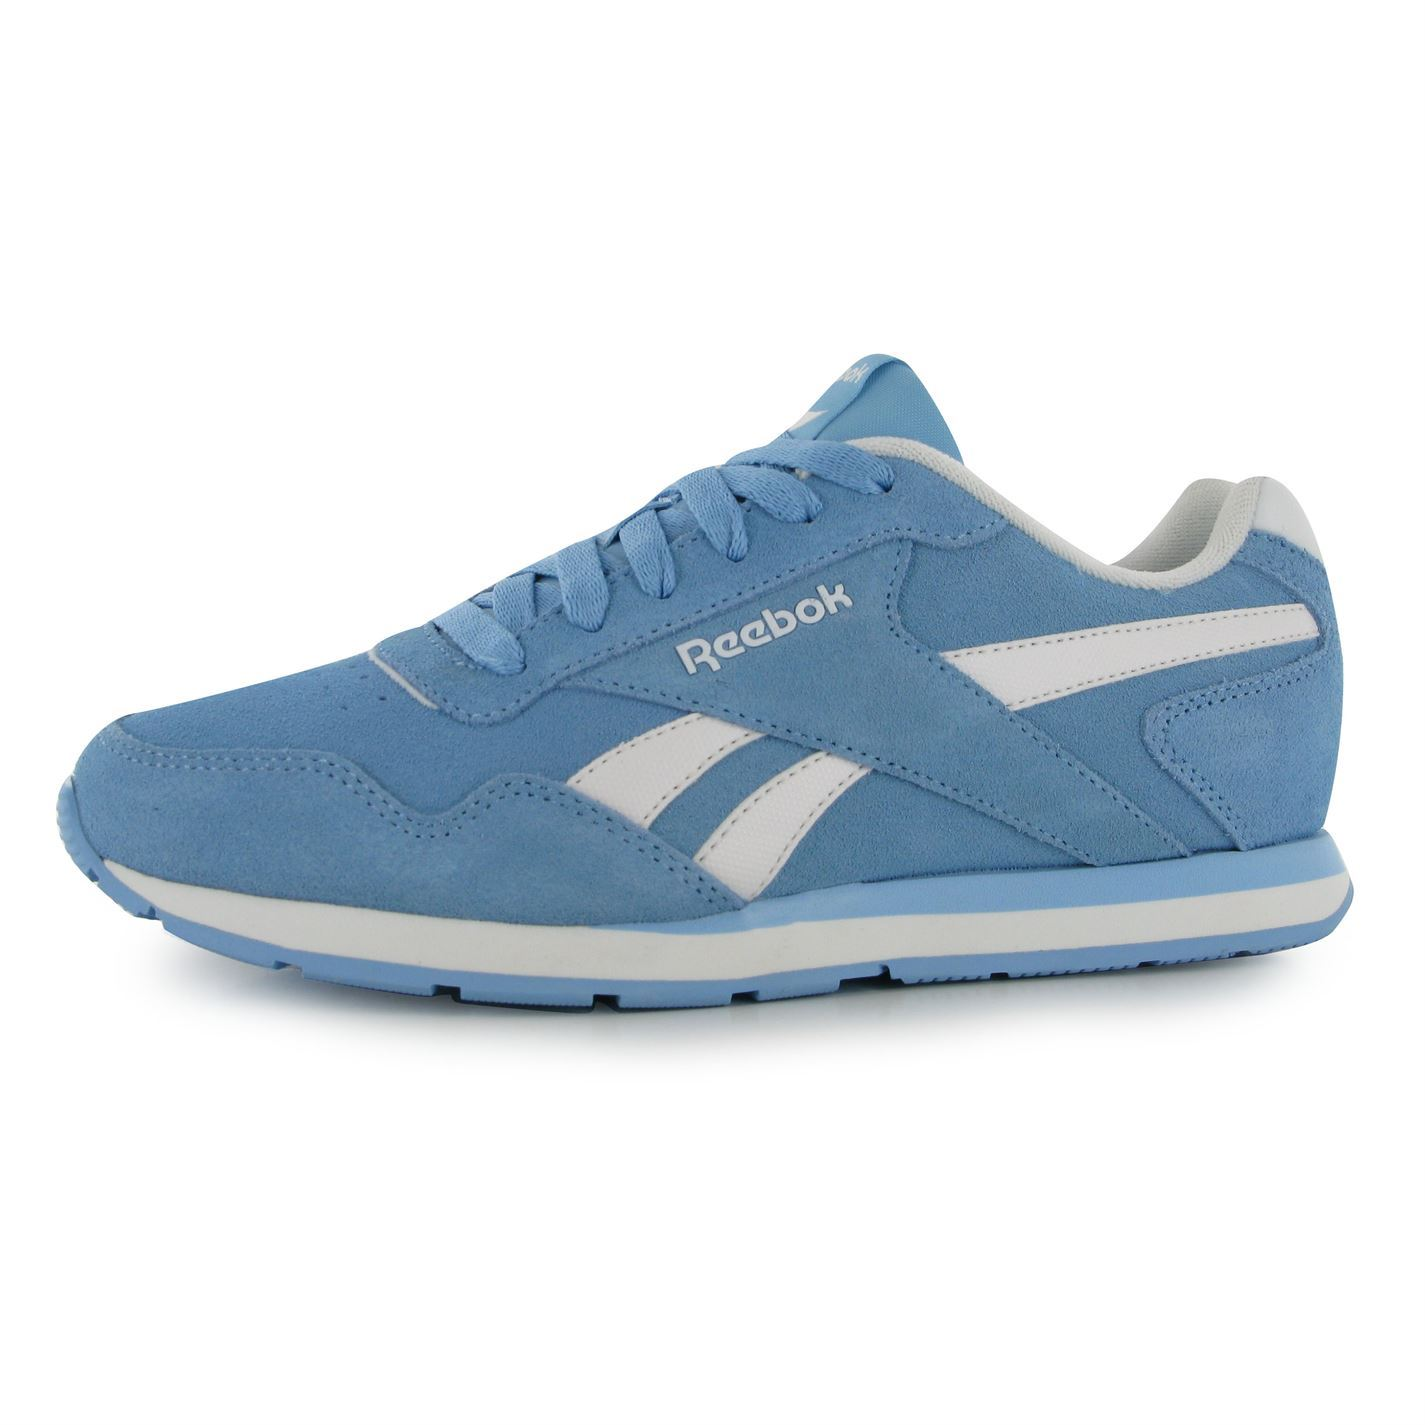 Reebok Glide Suede Trainers Womens BlueWhite Casual Fashion Sneakers Shoes